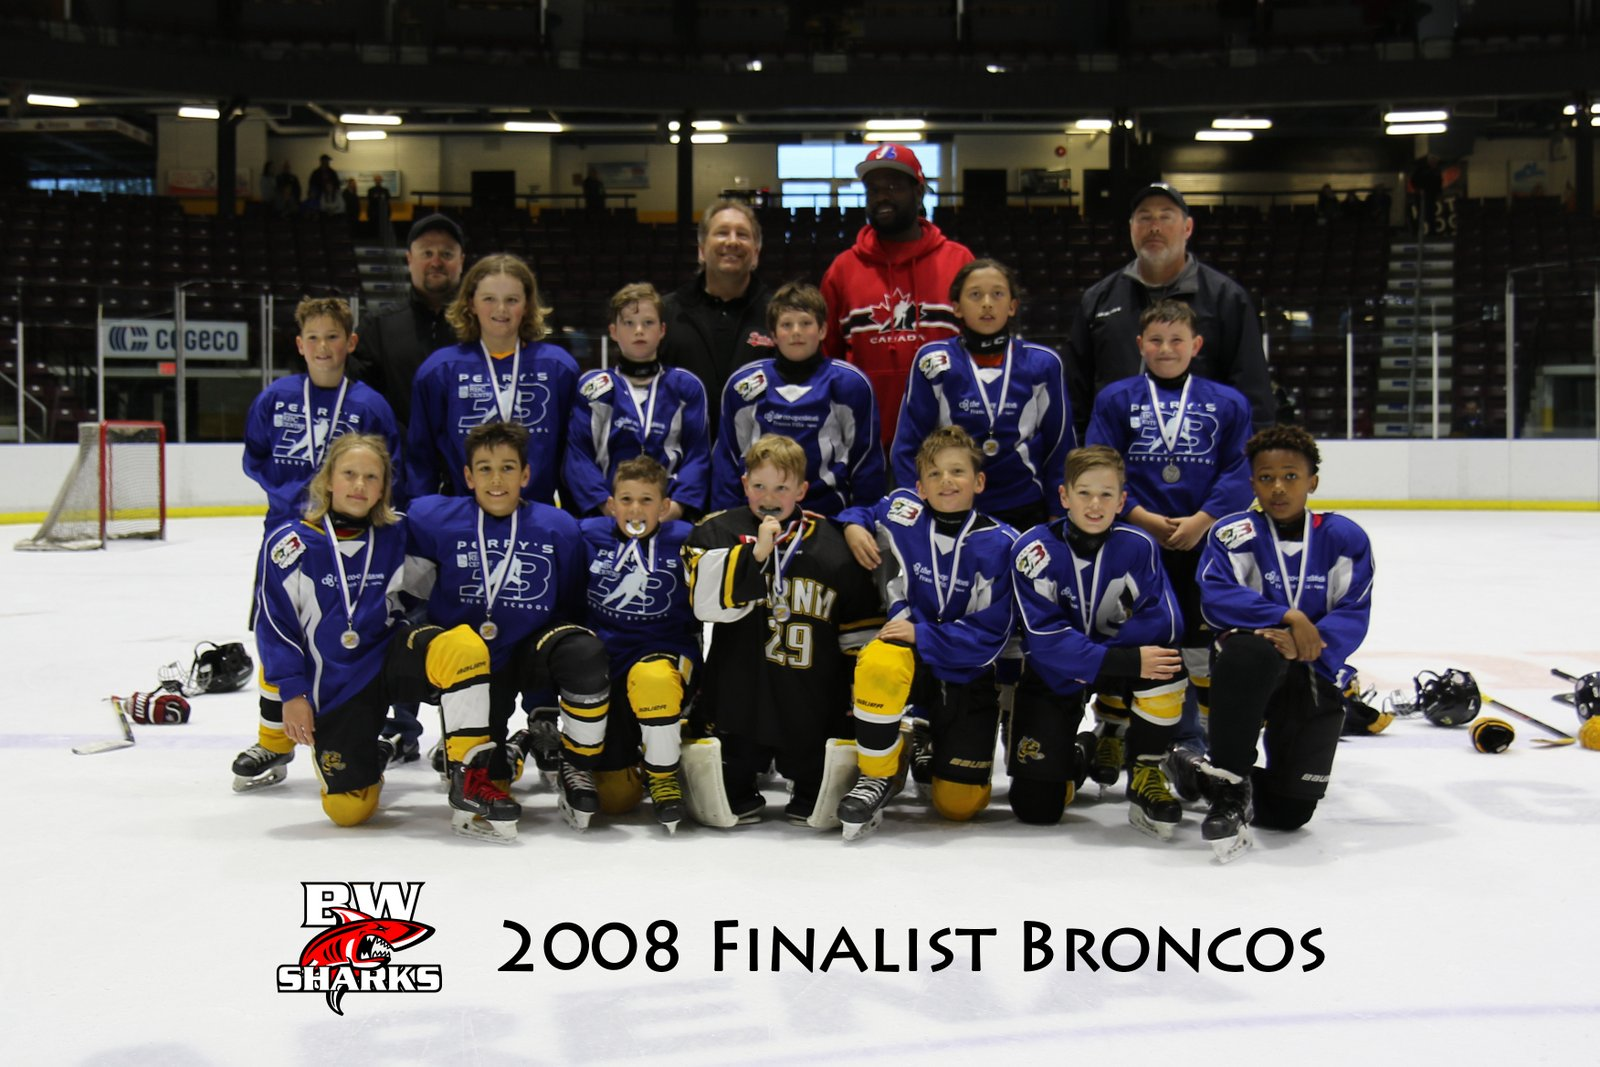 2008-Finalist-Broncos-SilverPeak-Studios-Canada-Sarnia-Bluewater-Sharks-Tournament-001